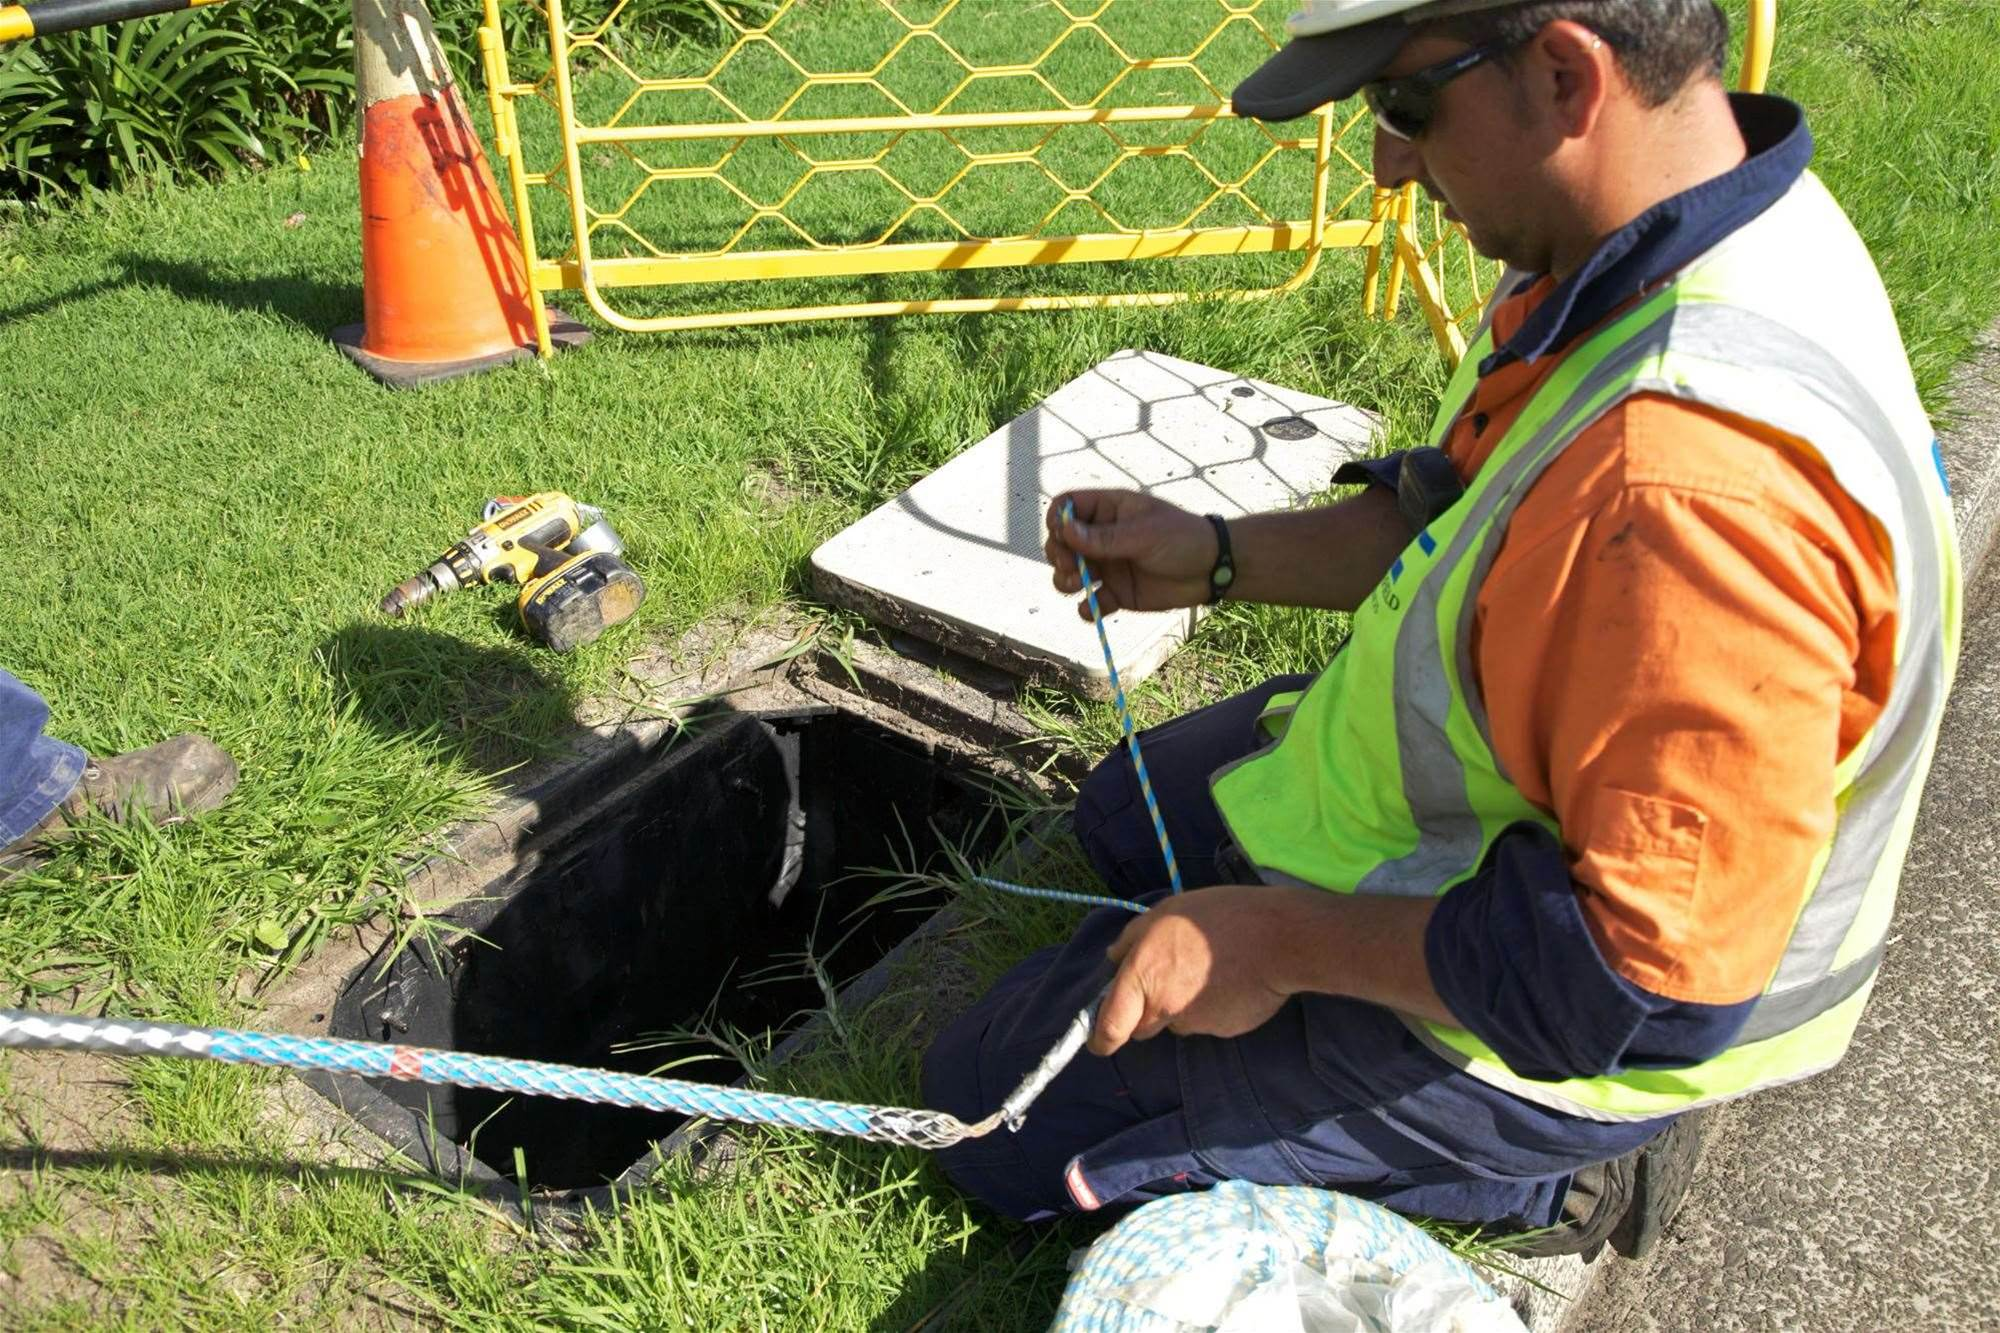 NBN Co reaches 10,000 active fibre connections